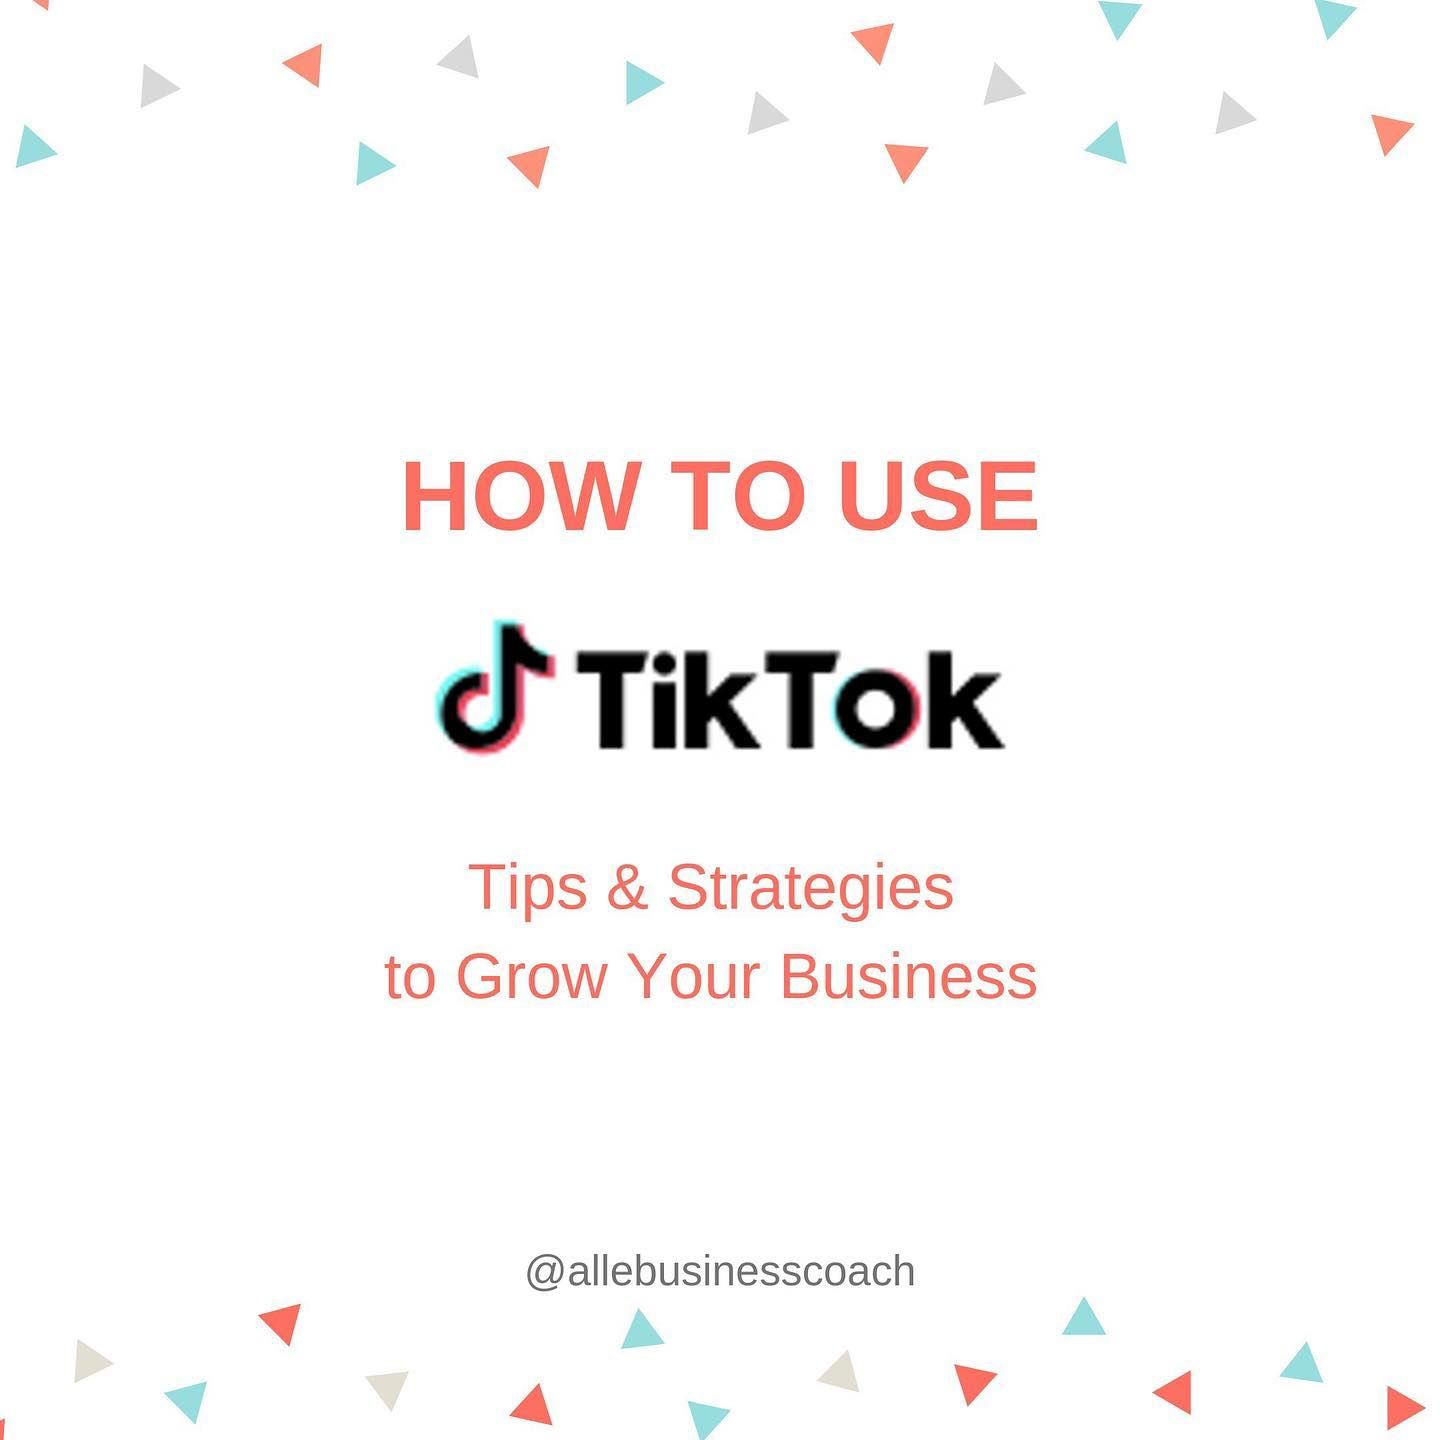 Best Time To Post On Tik Tok Best Time To Post Marketing Strategy Social Media Small Business Resources